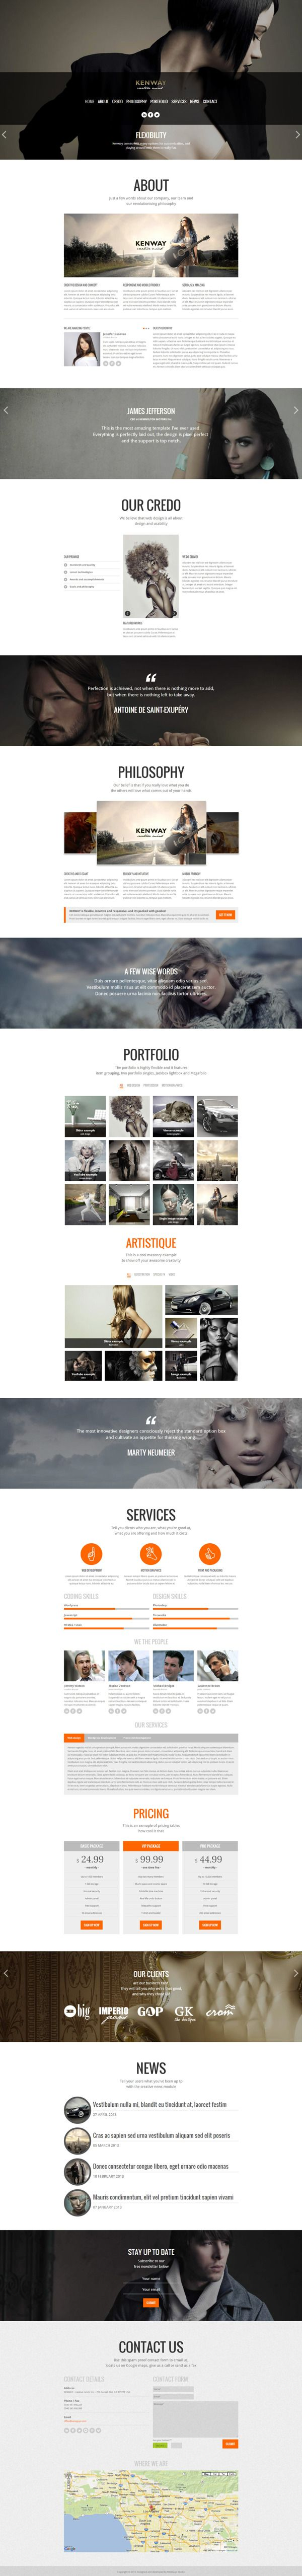 Kenway - Responsive Parallax HTML5 Template by Zizaza - design ocean, via Behance, find more on the Responsive Design Knowledge Hub: http://www.ugurus.com/responsive-design-examples